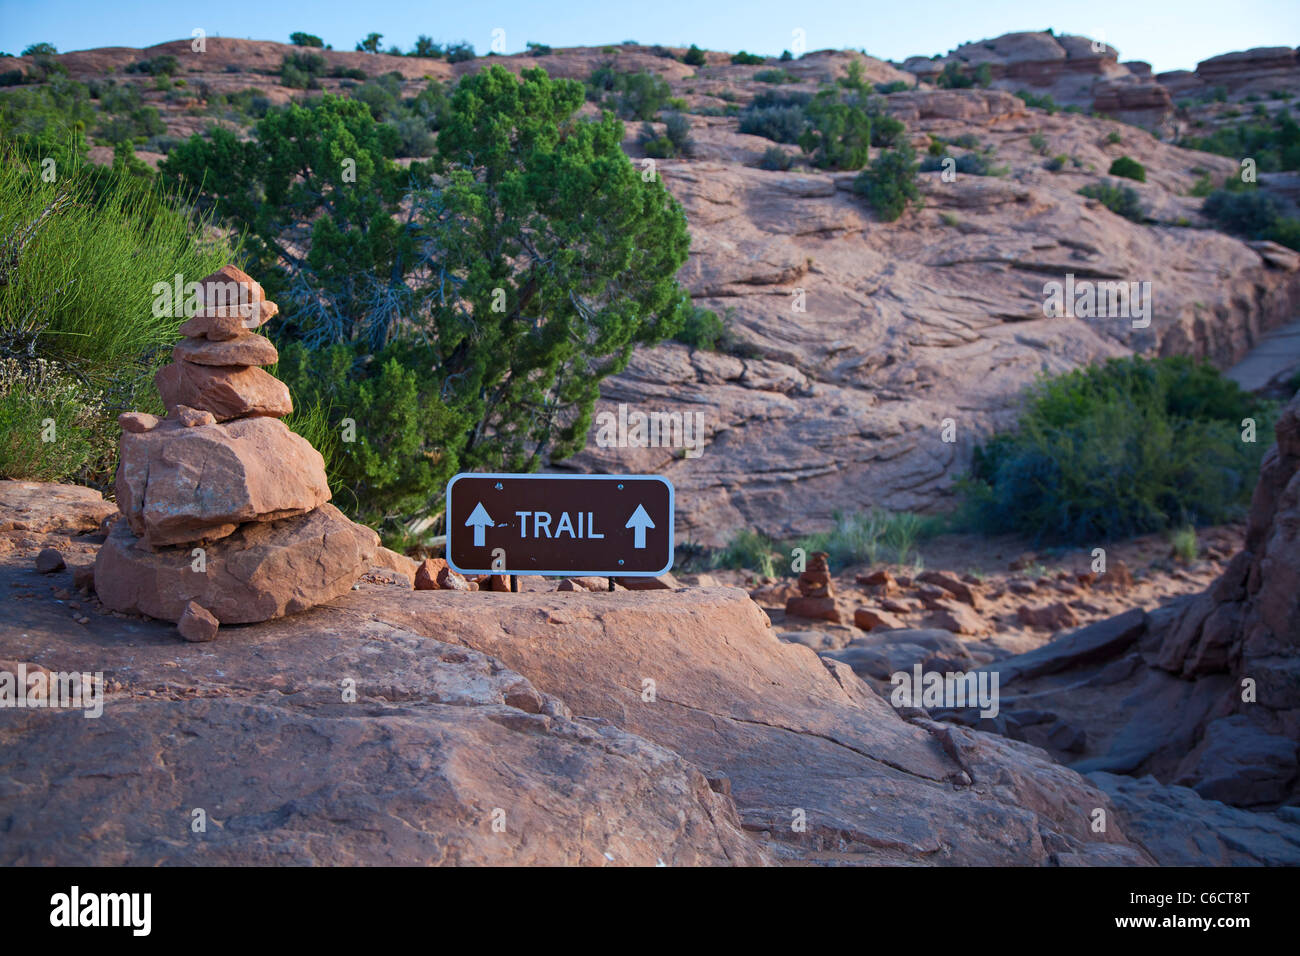 Moab, Utah - A cairn and a sign mark the trail to Delicate Arch in Arches National Park. - Stock Image